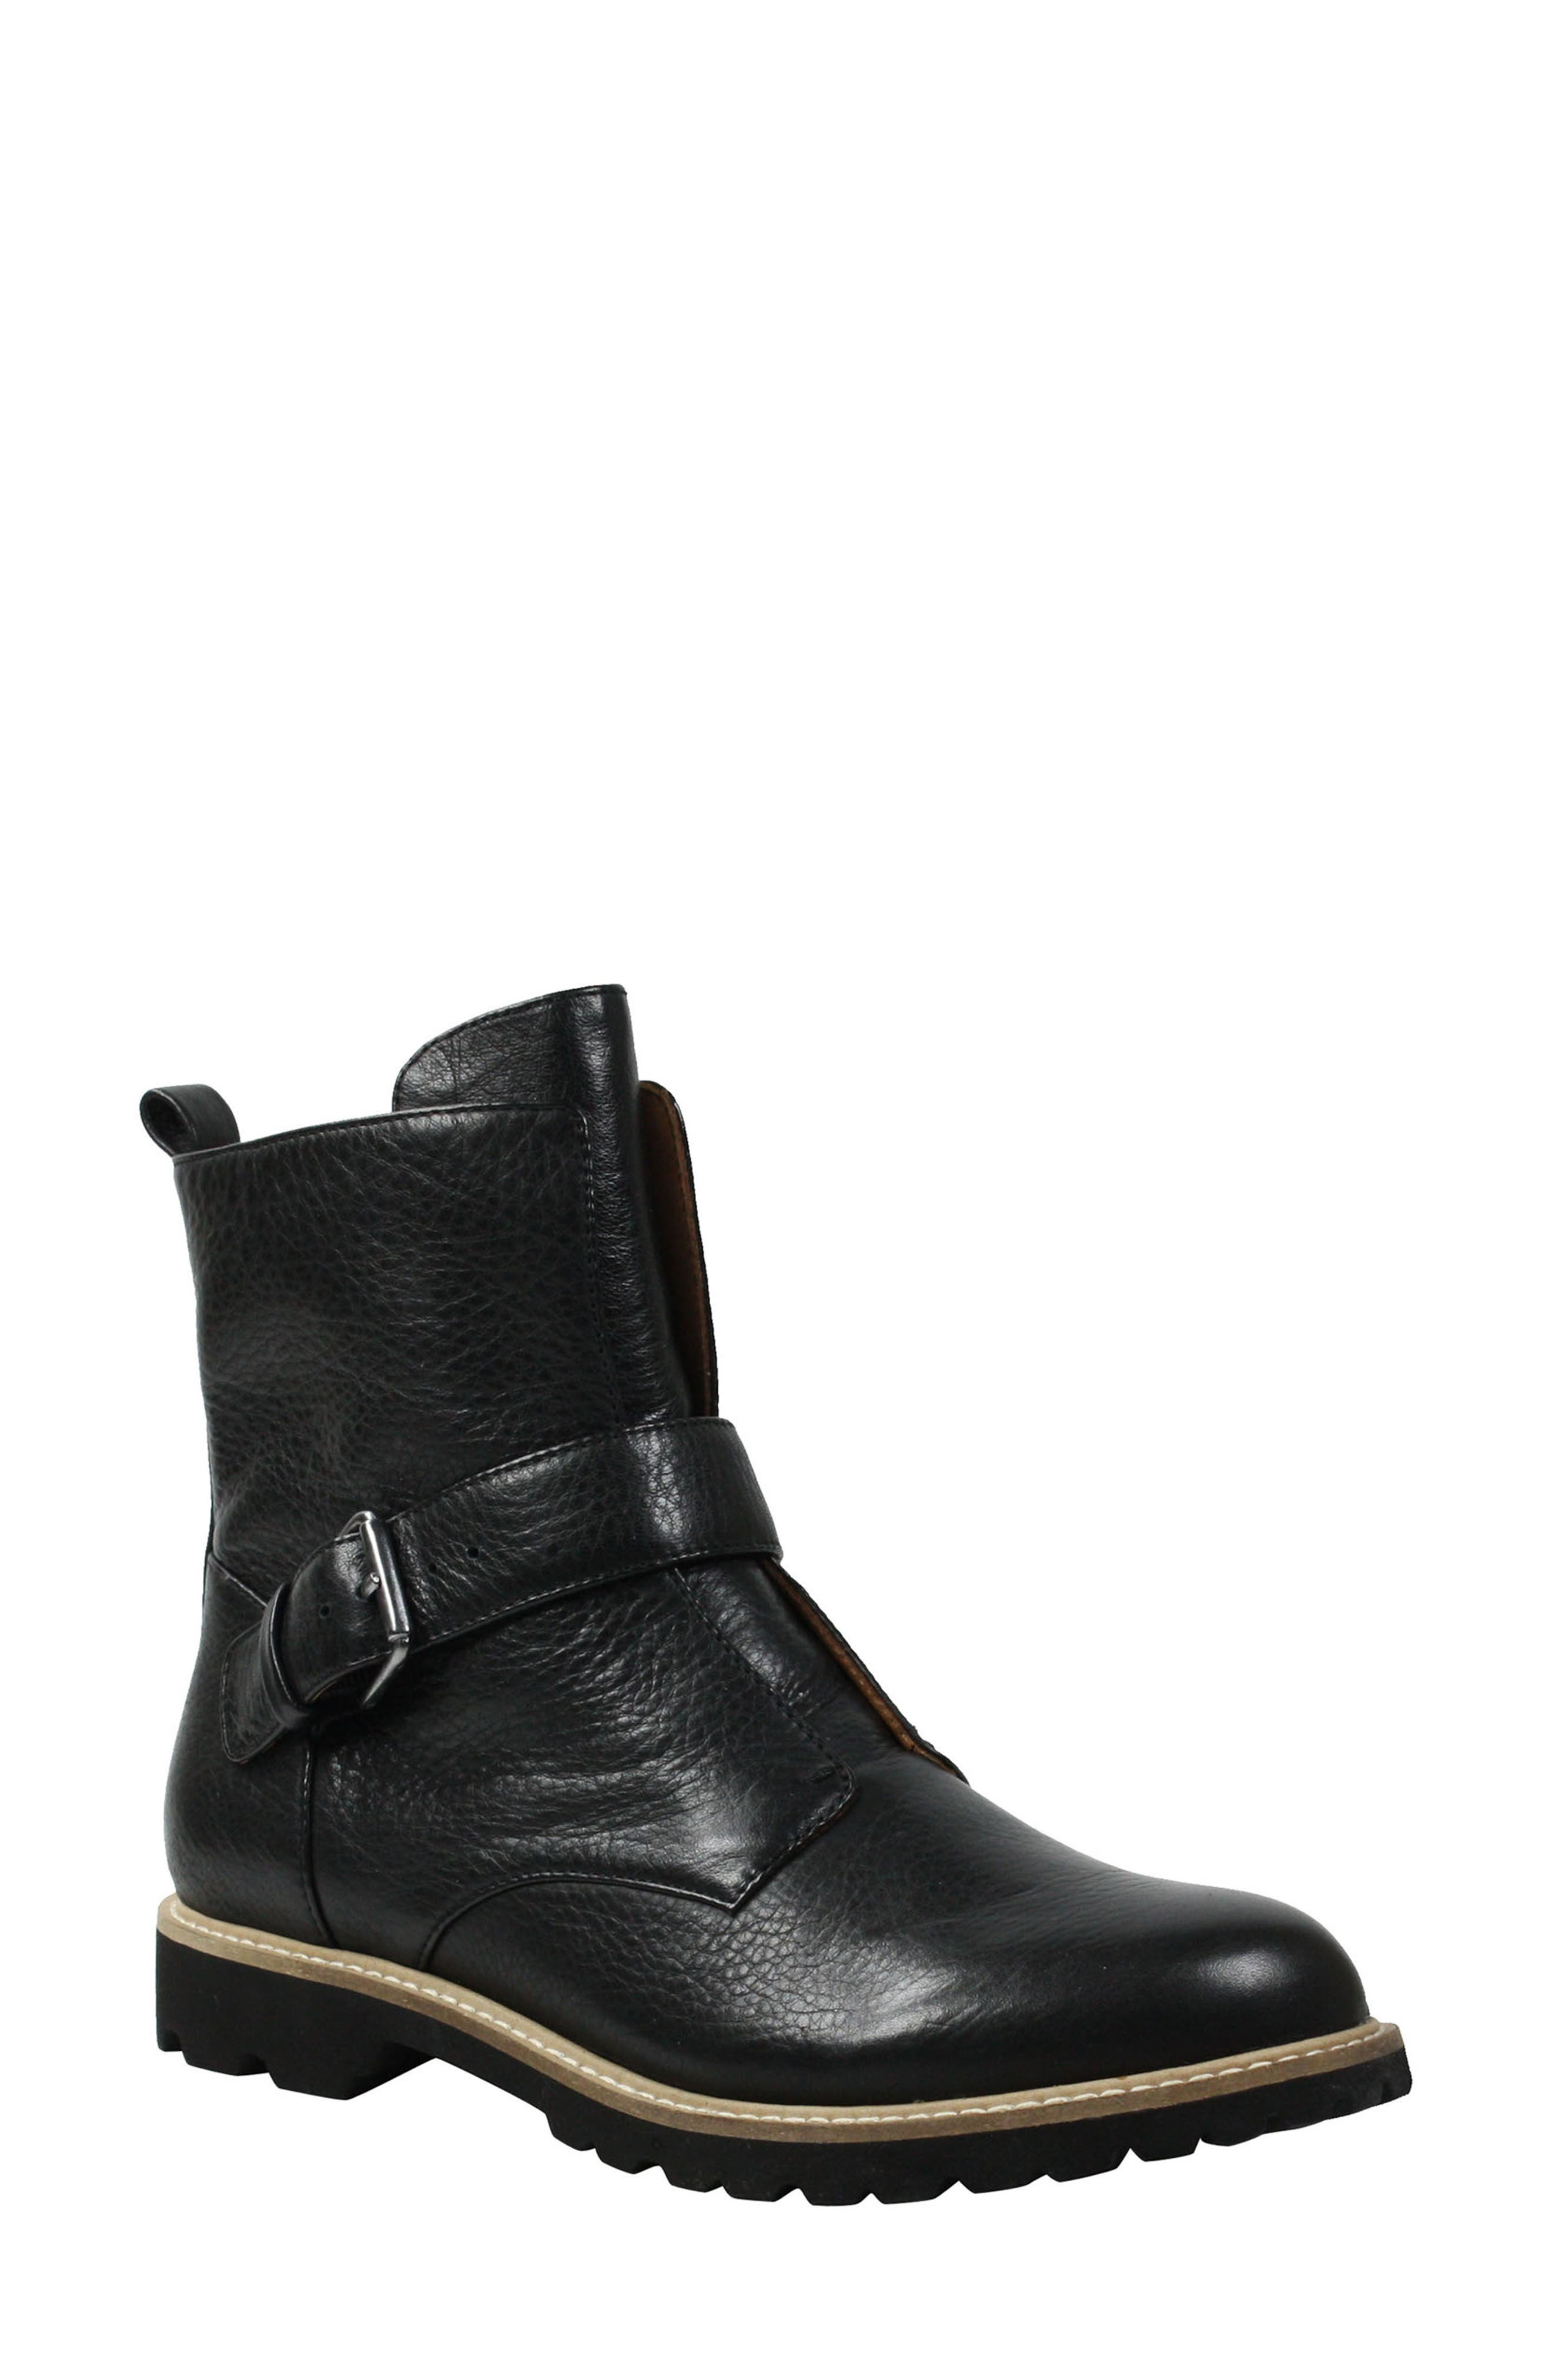 Rapolano Boot,                         Main,                         color, 001